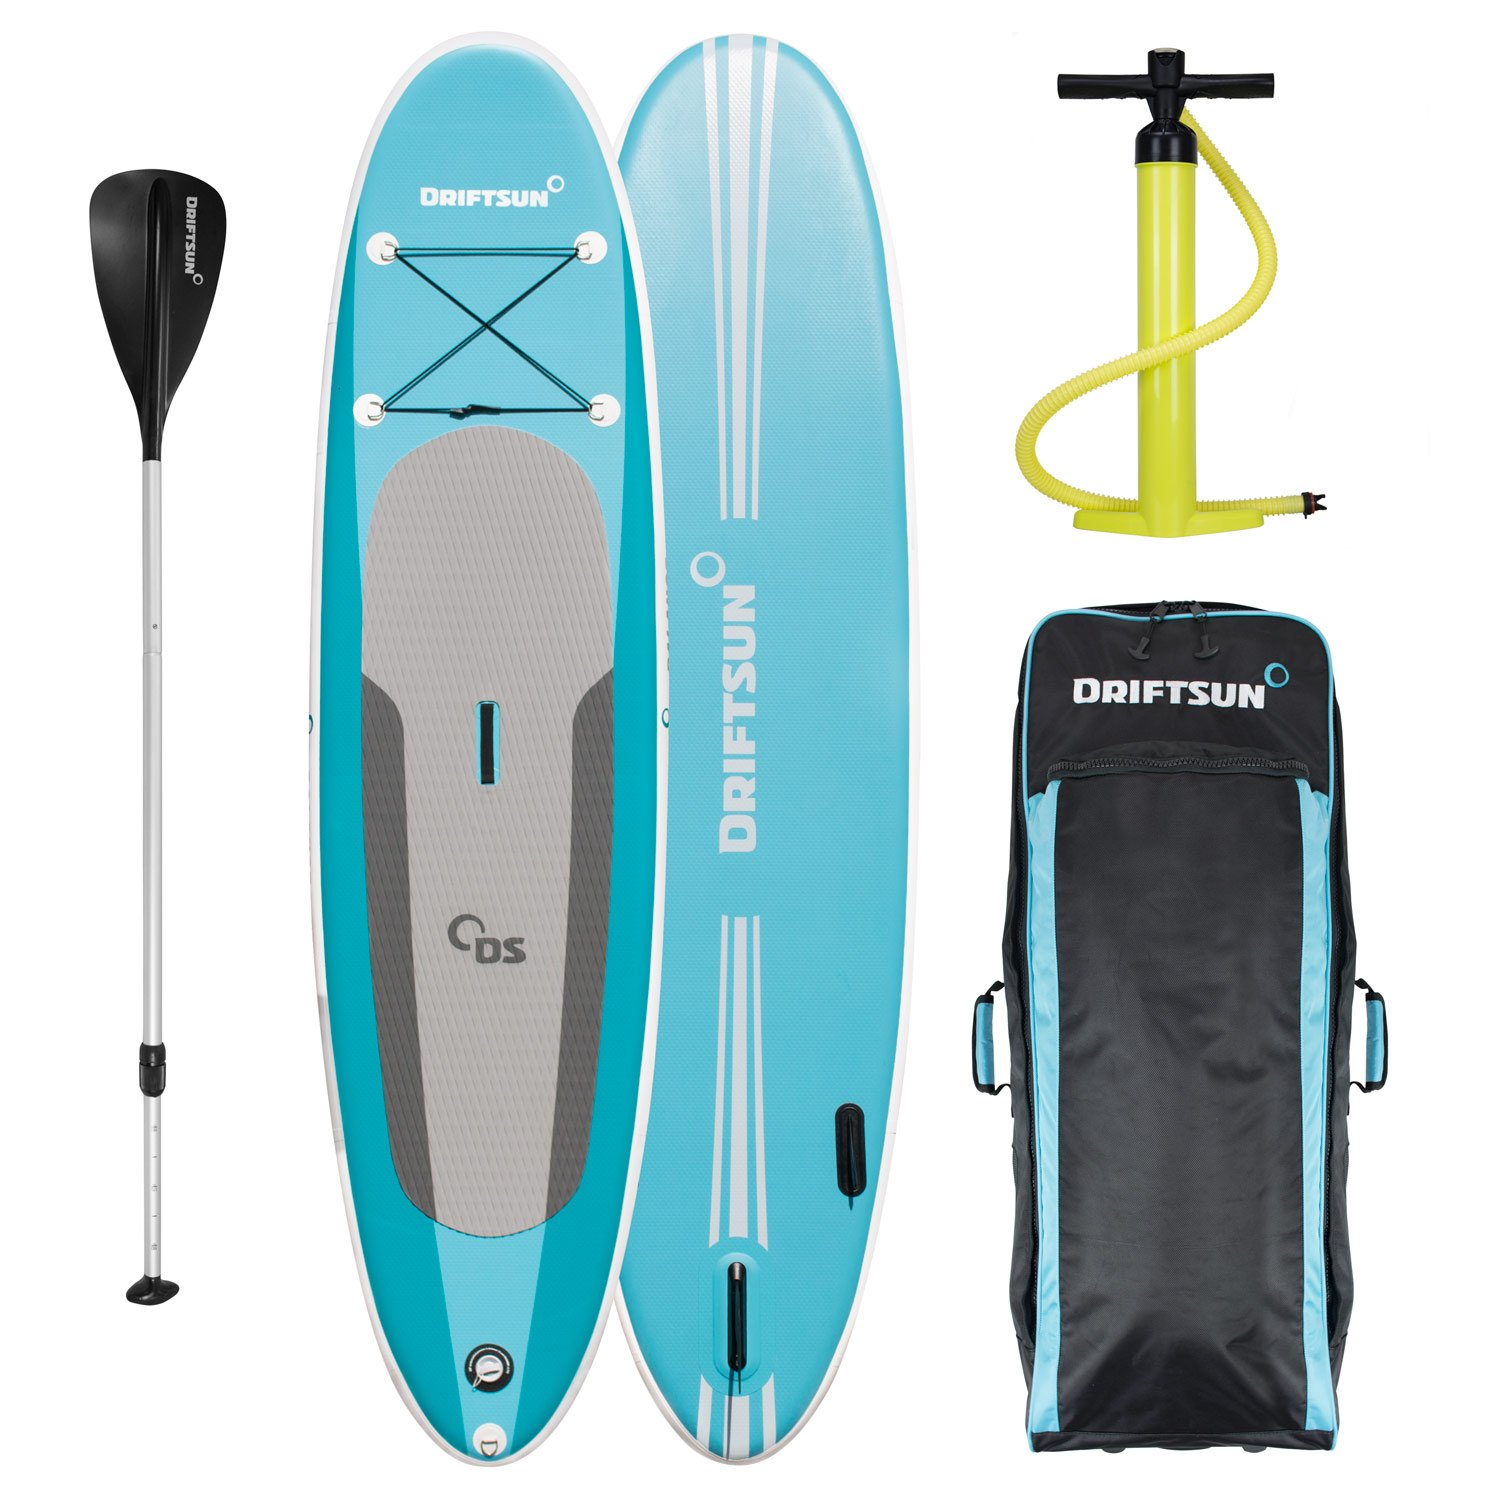 Driftsun Balance 11 Yoga SUP Inflatable Stand Up Paddle Board | Complete Package with Travel Backpack, Adjustable Paddle, Coil Leash - 11 Feet x 33 Inch